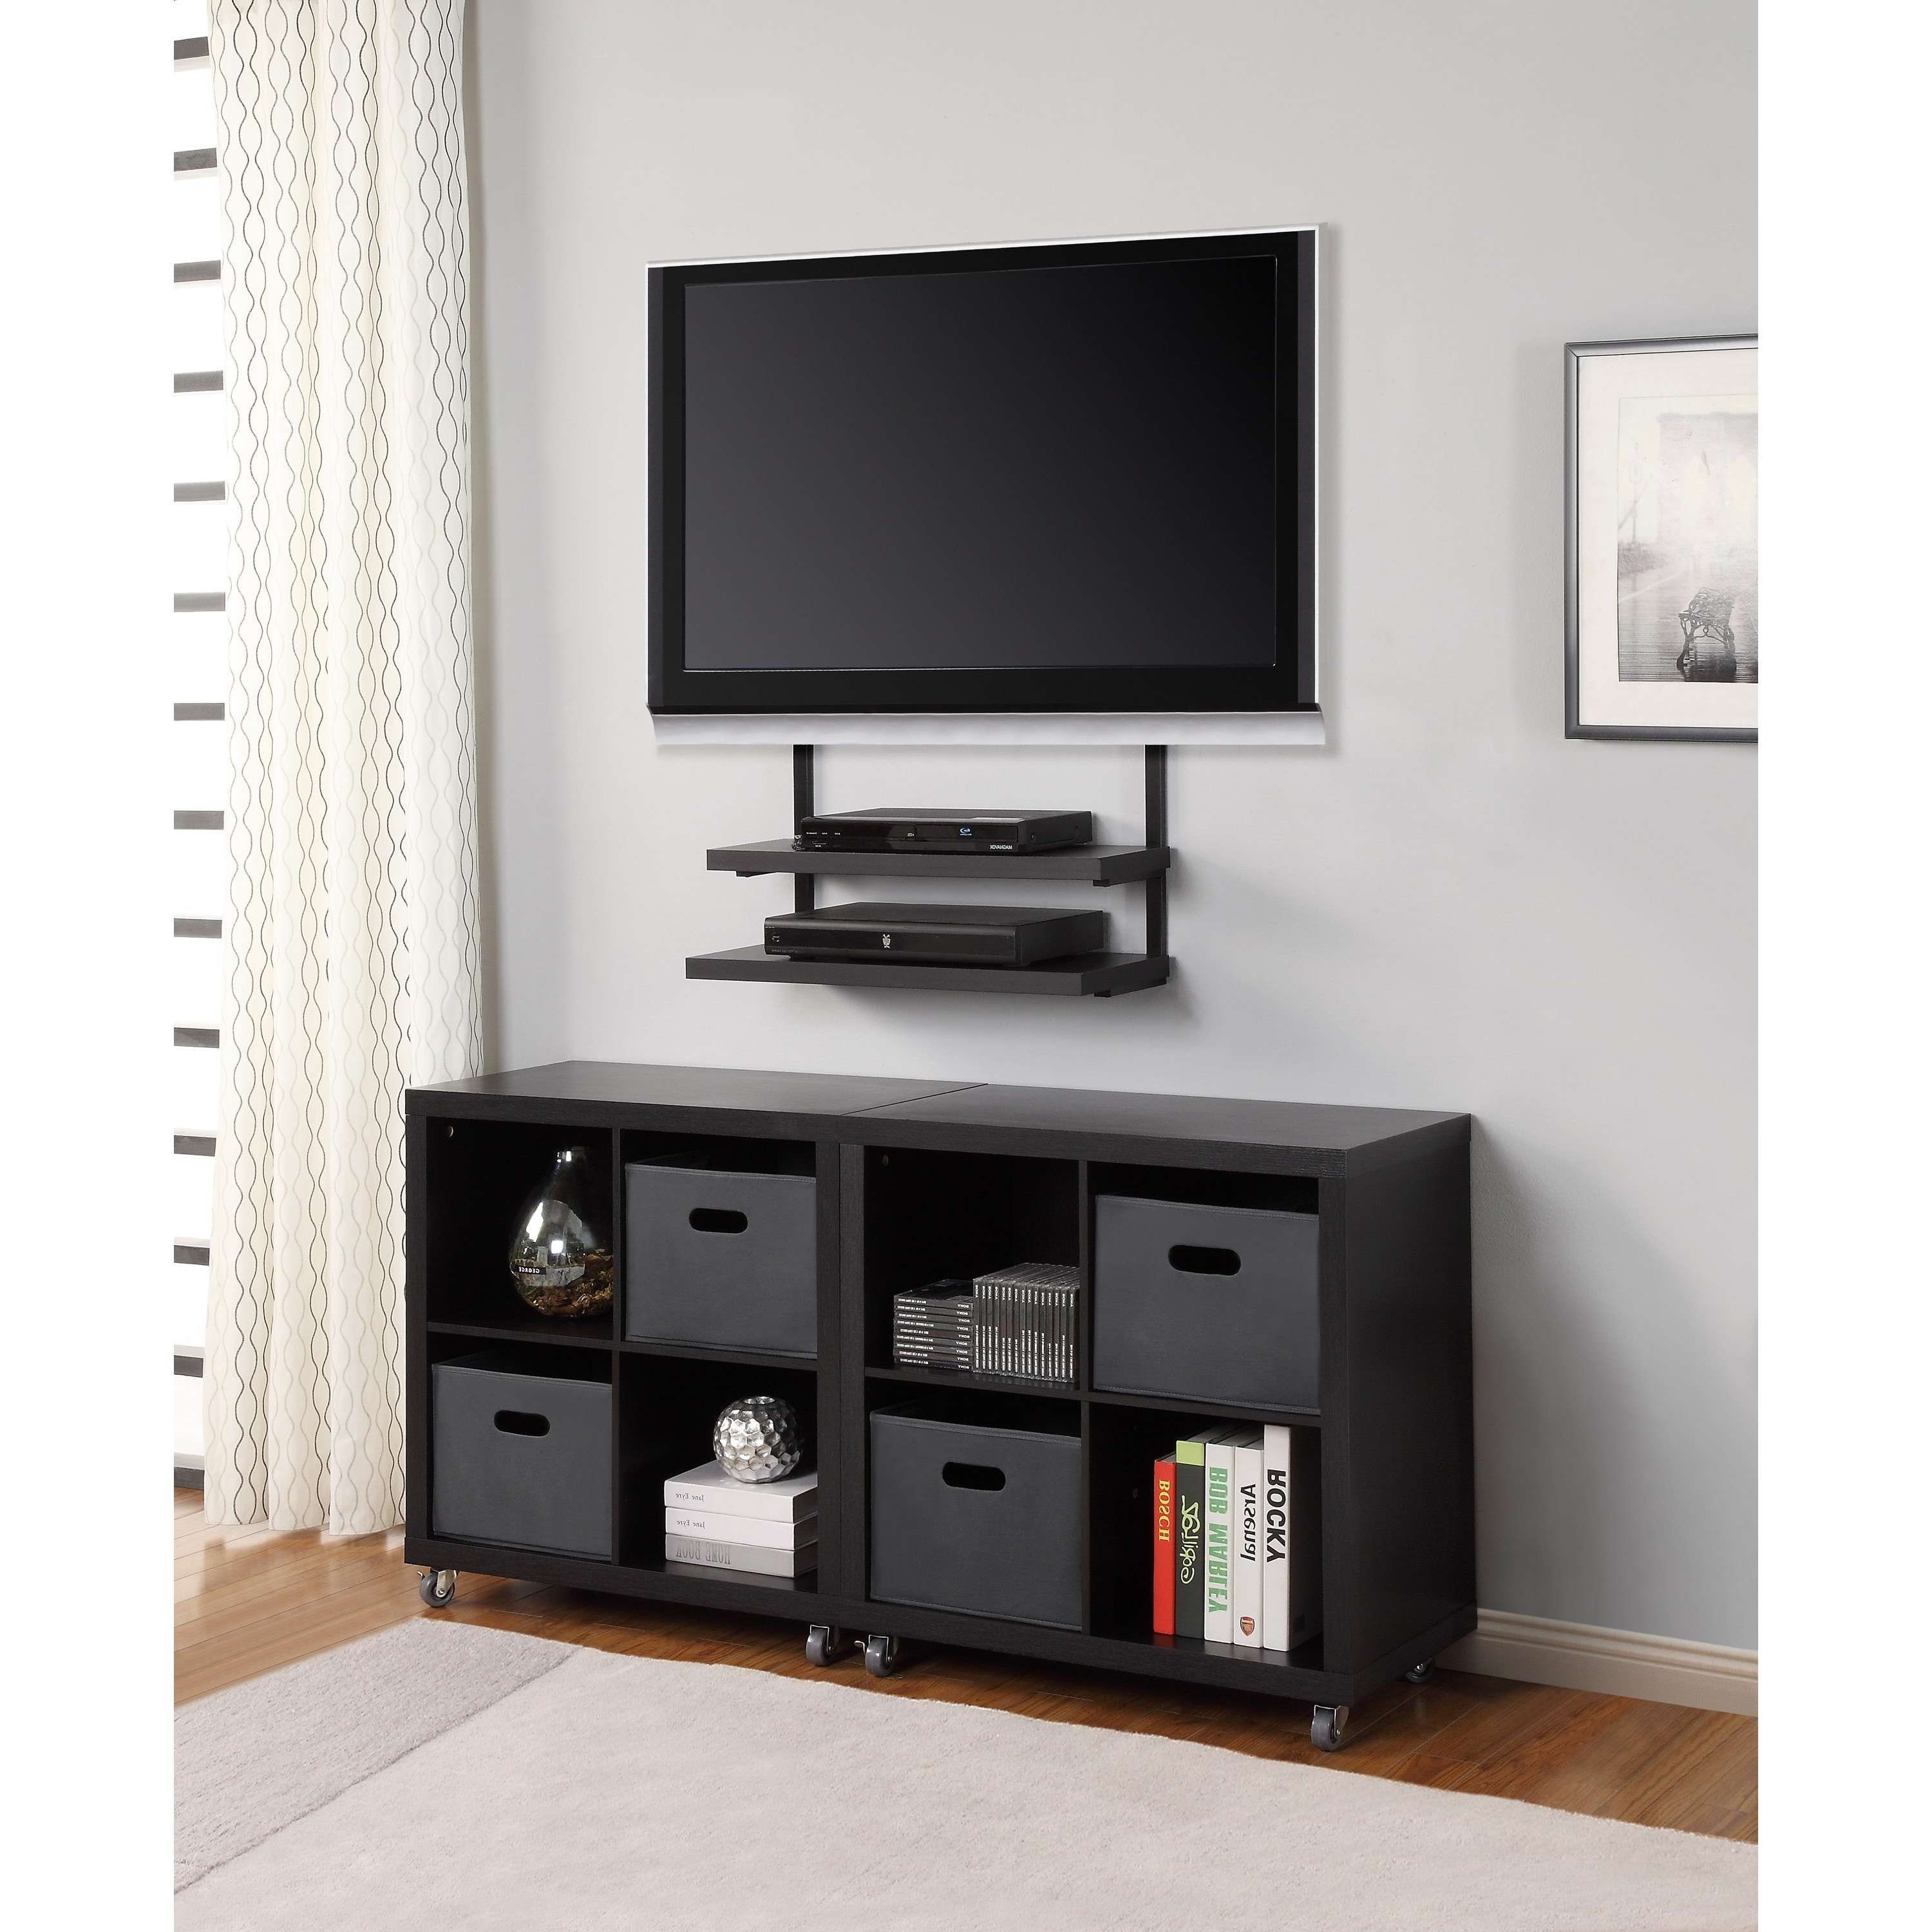 Unique Tv Stand Ideas Small Corner Awesome Images About Trends And Regarding Unique Tv Stands (View 16 of 20)